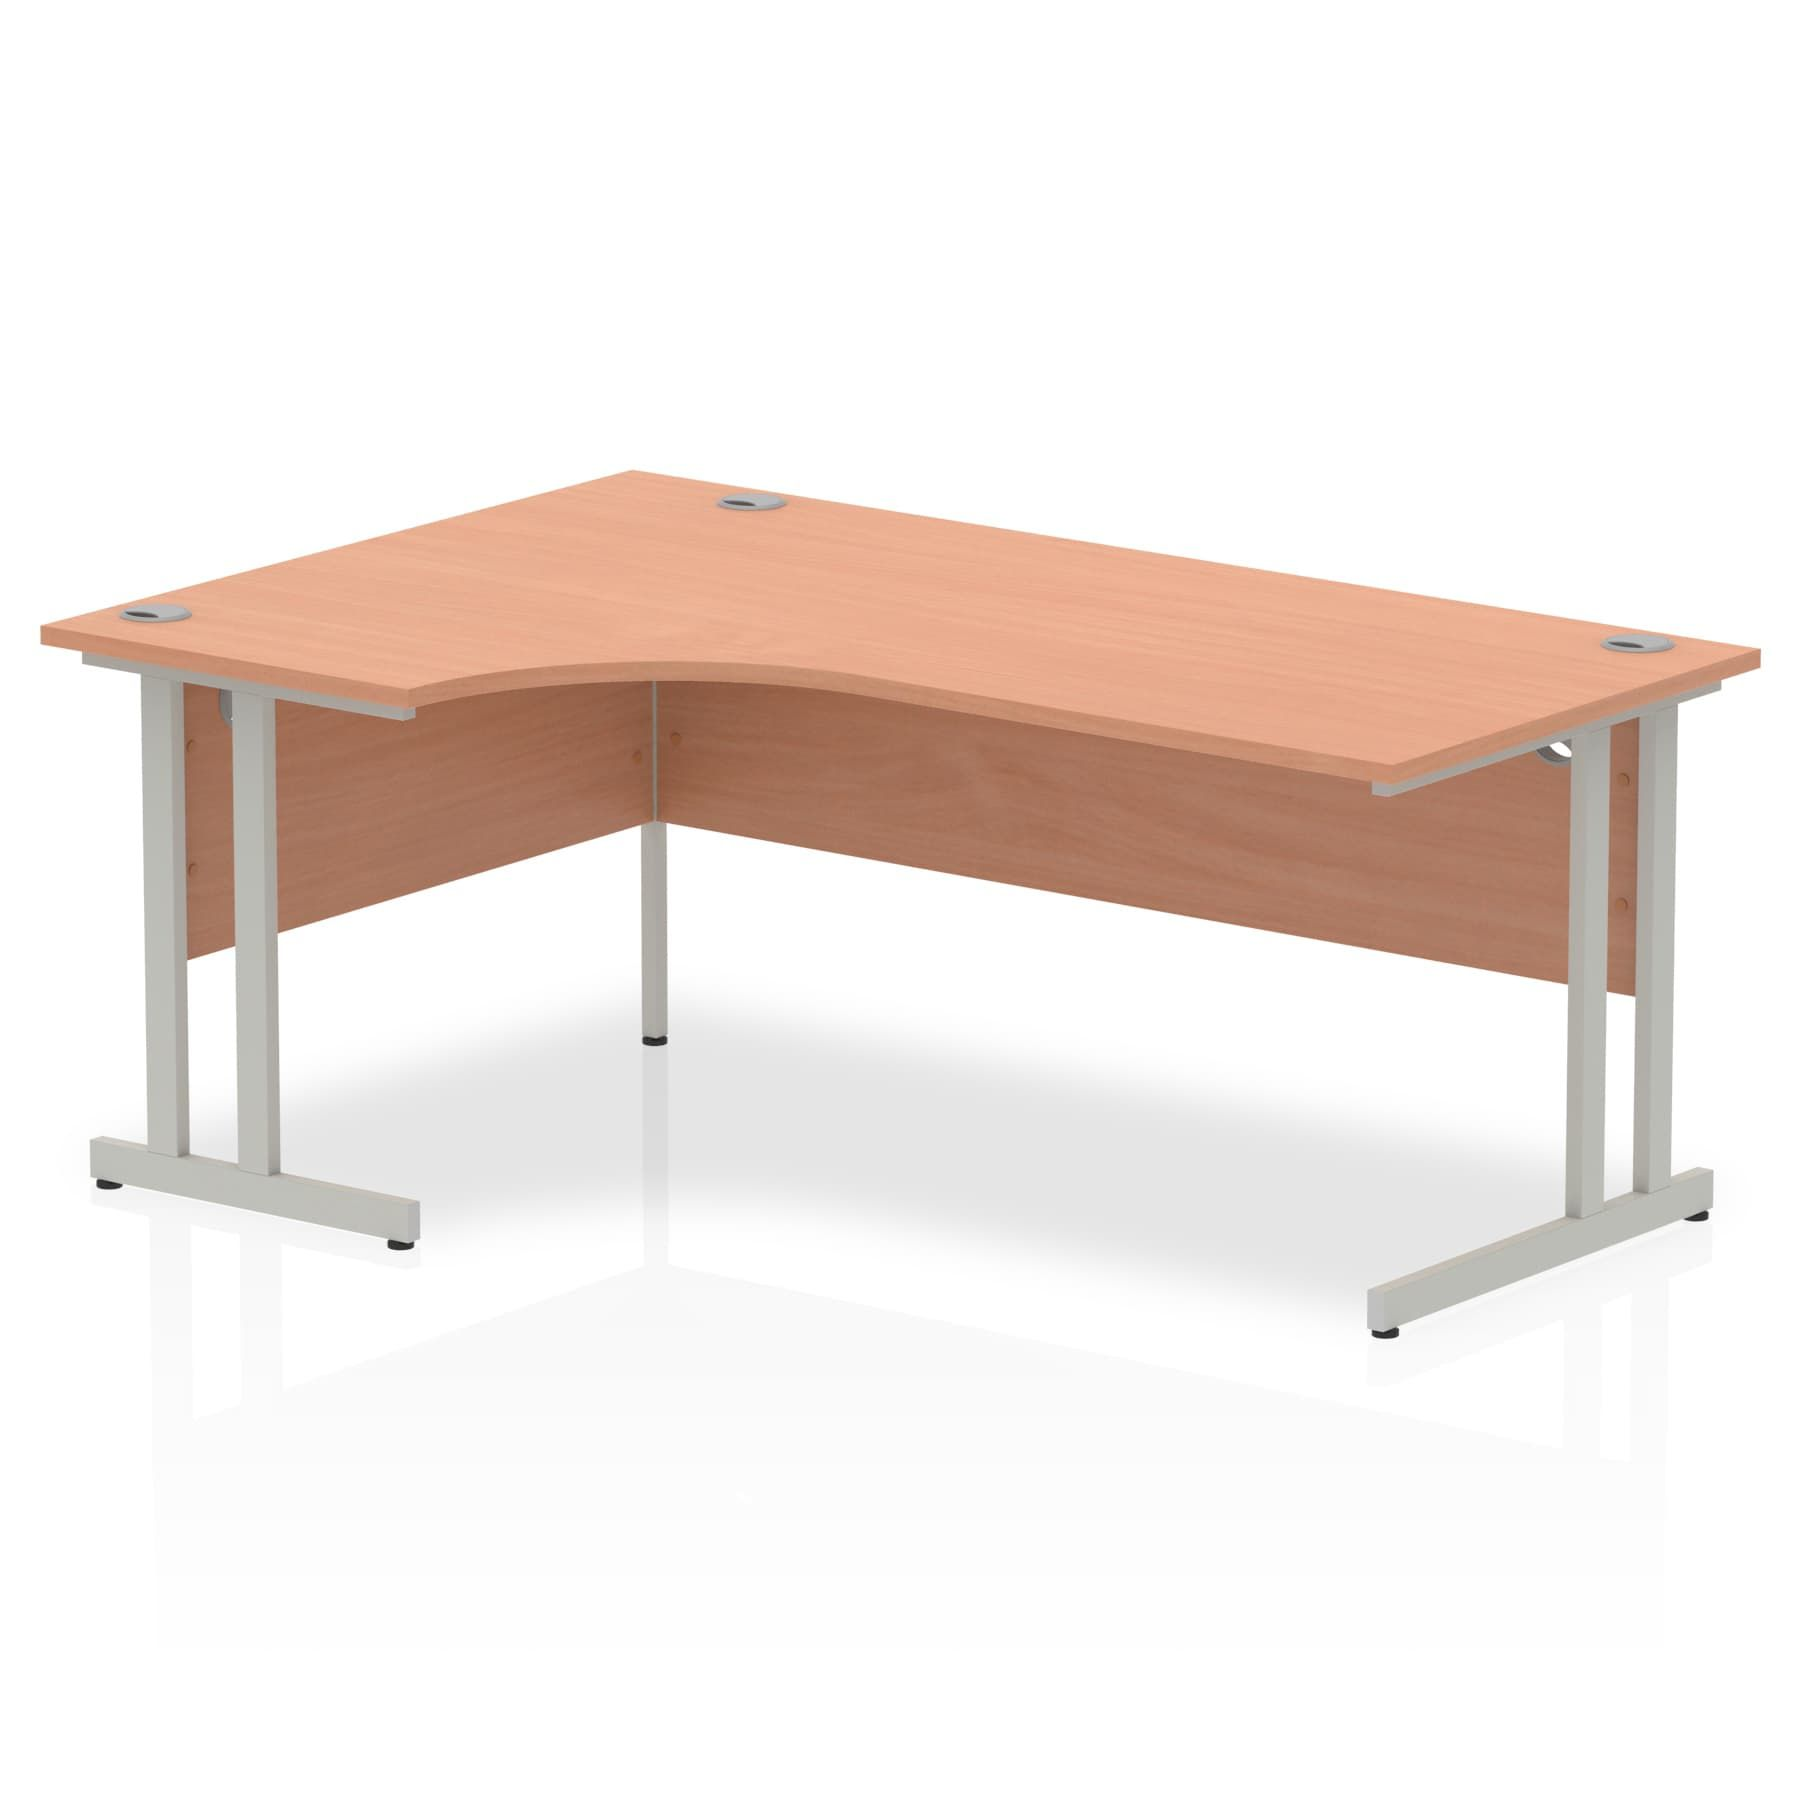 Impulse 1800 Left Hand Crescent Desk with Cantilever Leg